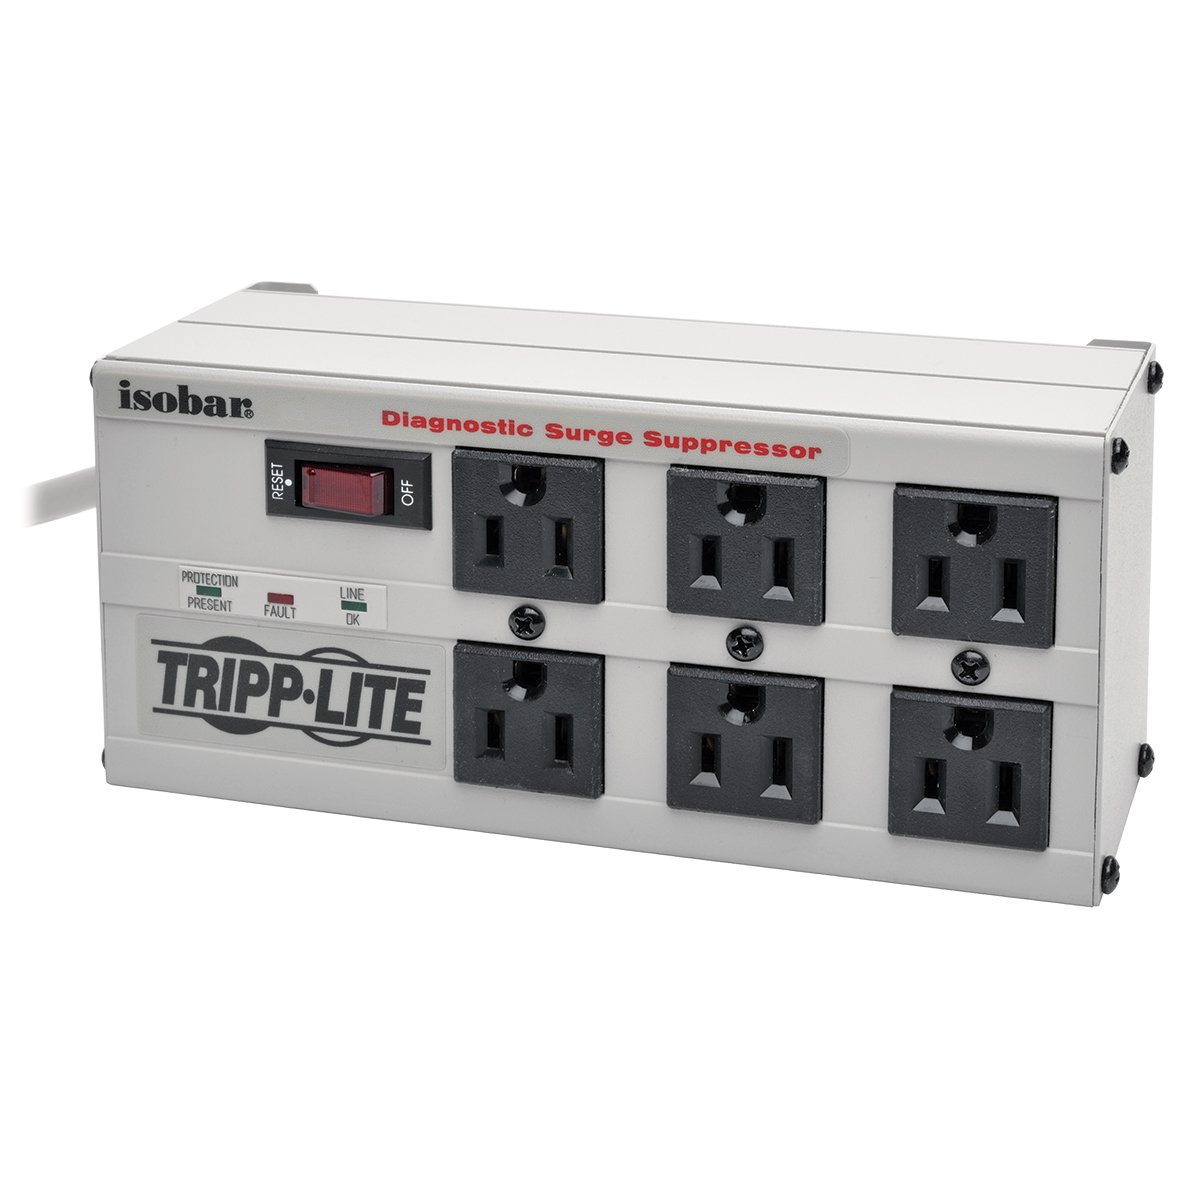 Tripp Lite Ch 9101012 Natripp Isobar 6 Outlet Surge Switch Wiring1 Diagram Diagosis Protector Power Strip 6ft Cord Right Angle Plug 3300 Joules Isobar6 Home Audio